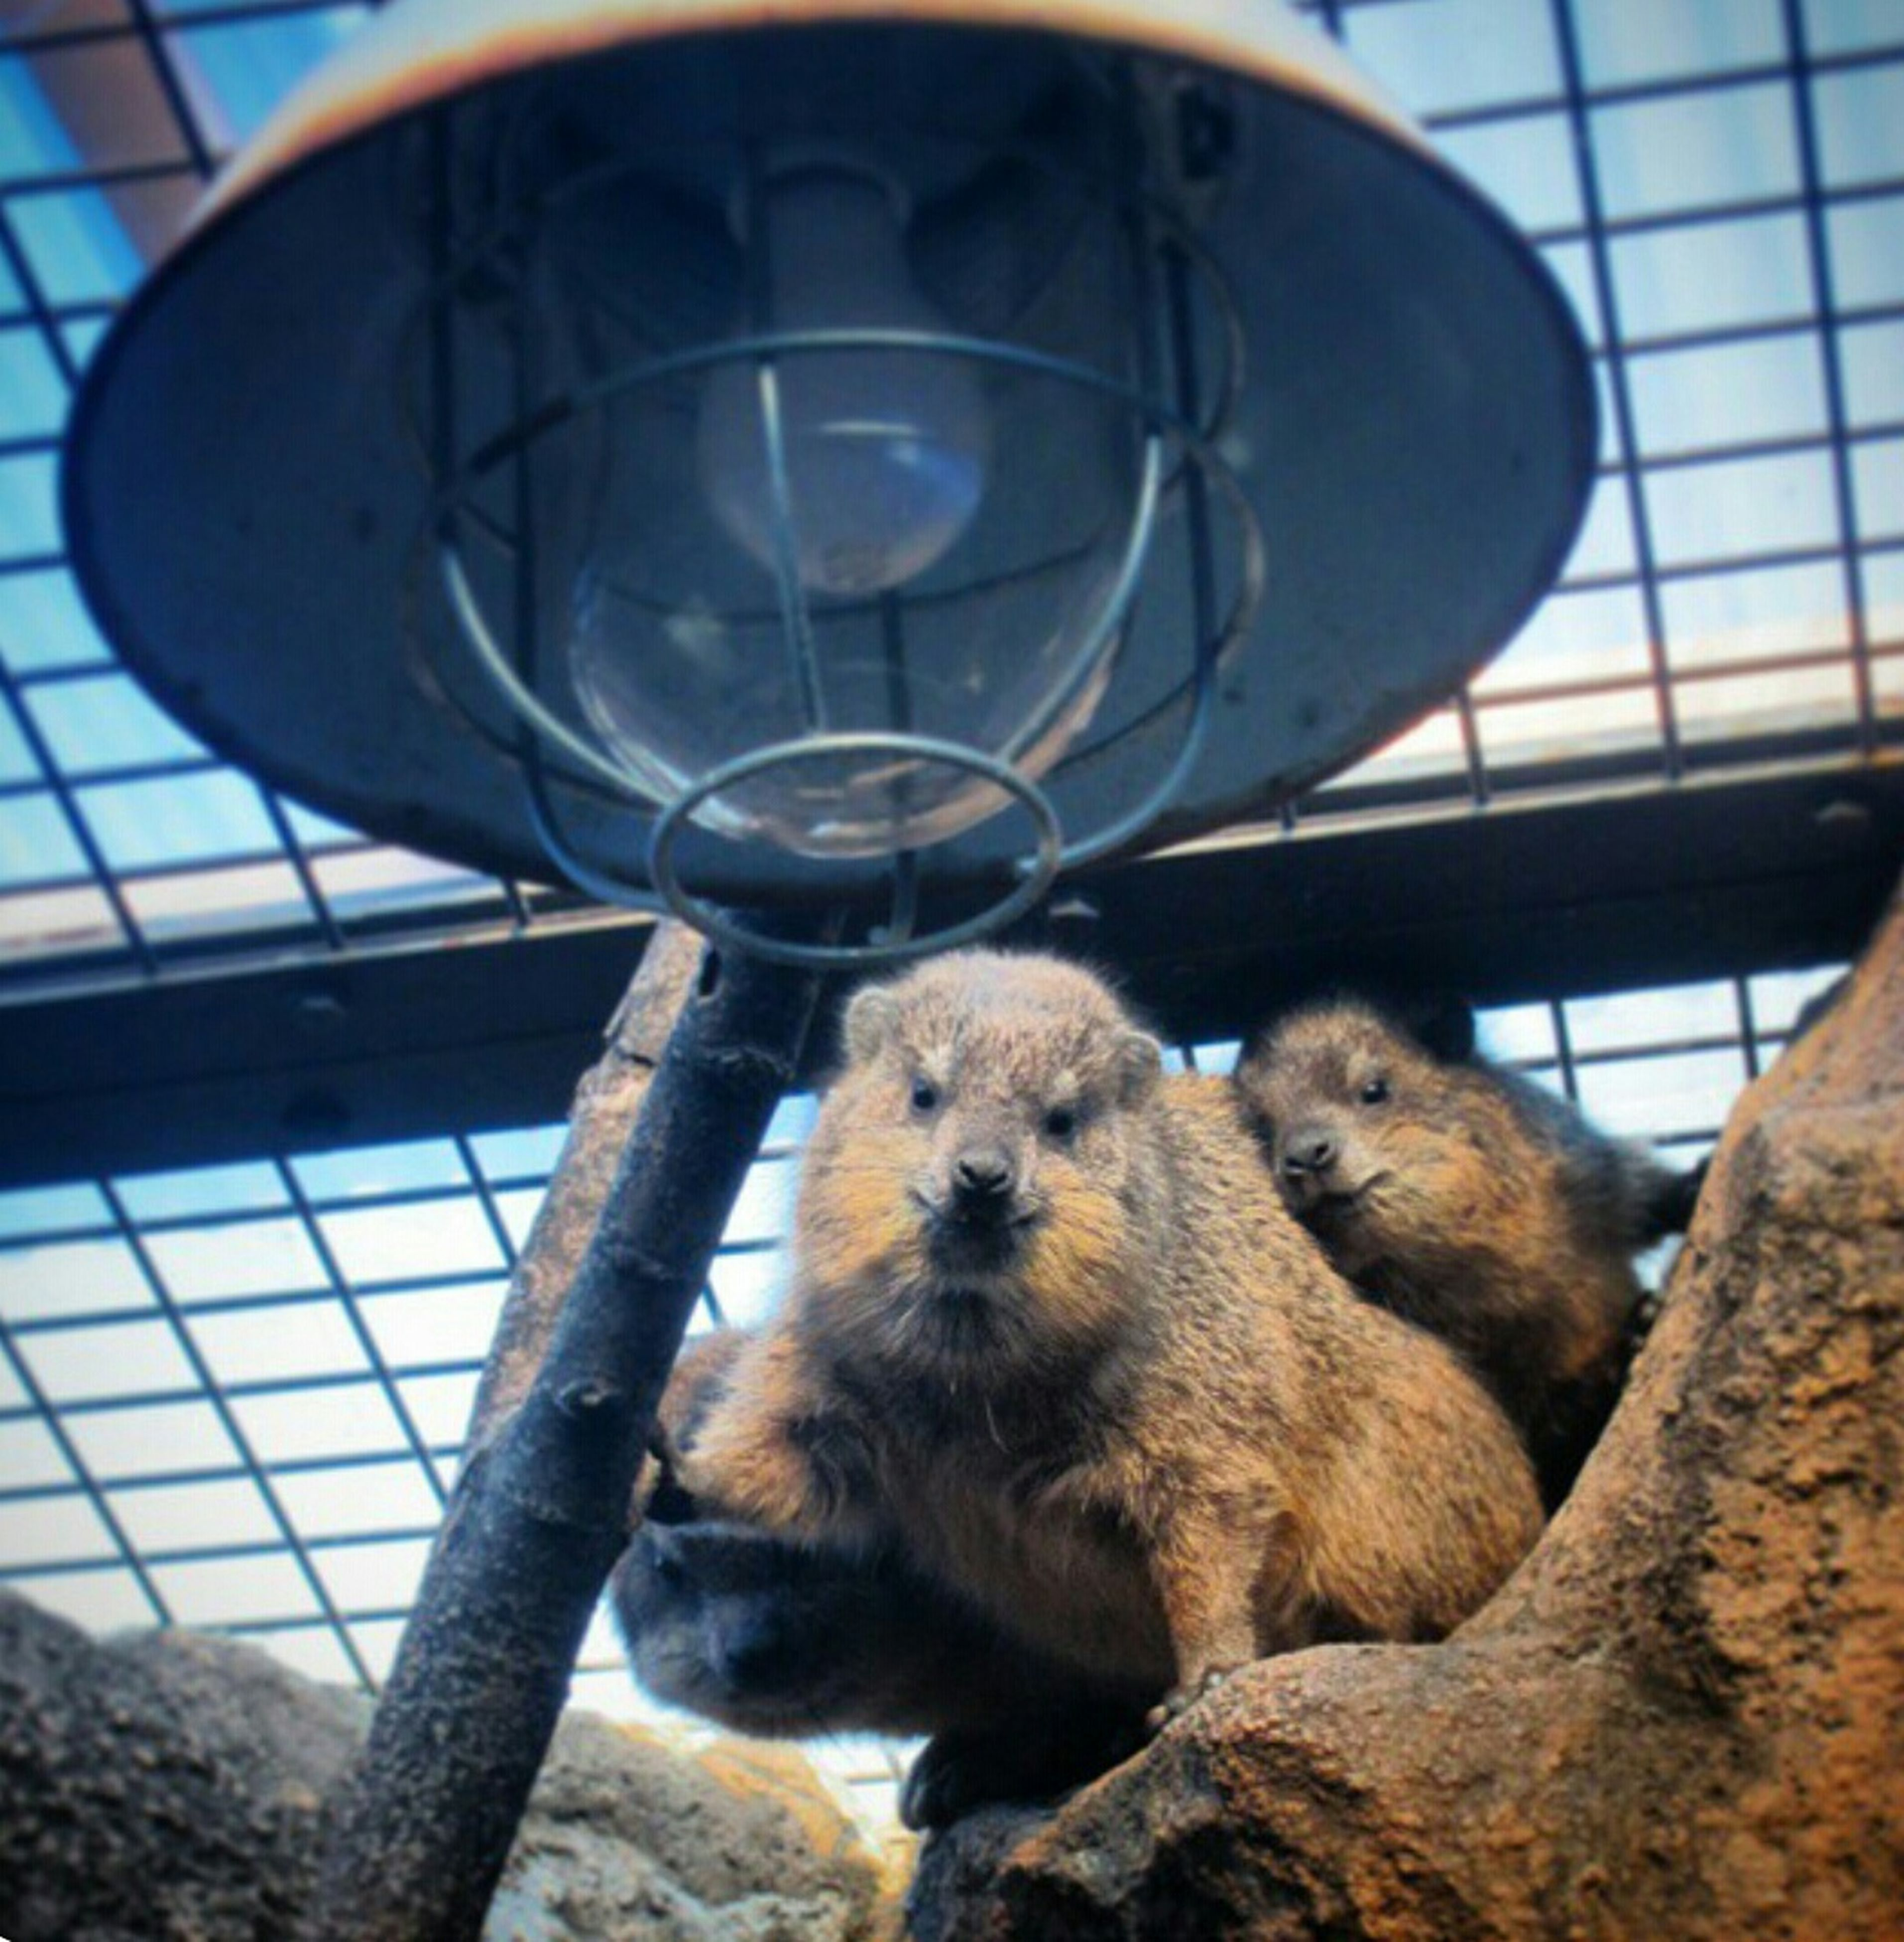 animal themes, one animal, mammal, pets, indoors, domestic animals, dog, low angle view, metal, sitting, sunlight, close-up, no people, day, animals in captivity, lighting equipment, built structure, wildlife, looking at camera